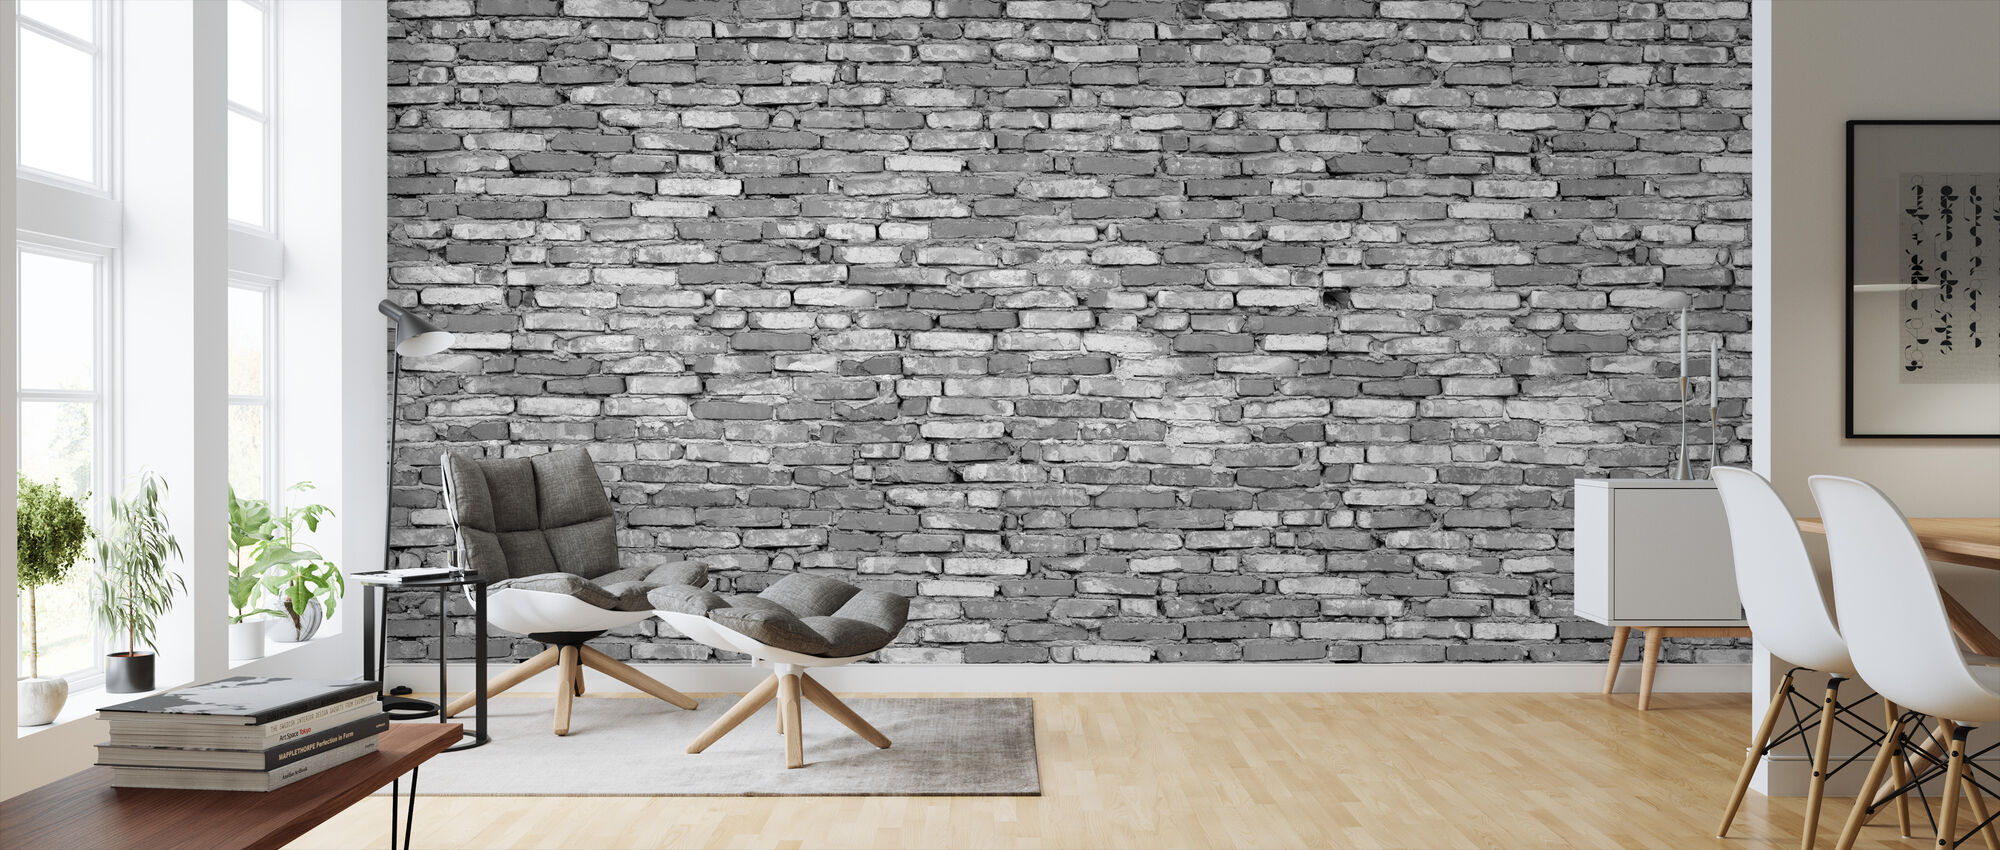 Old Brick Wall - Grey - Wallpaper - Living Room